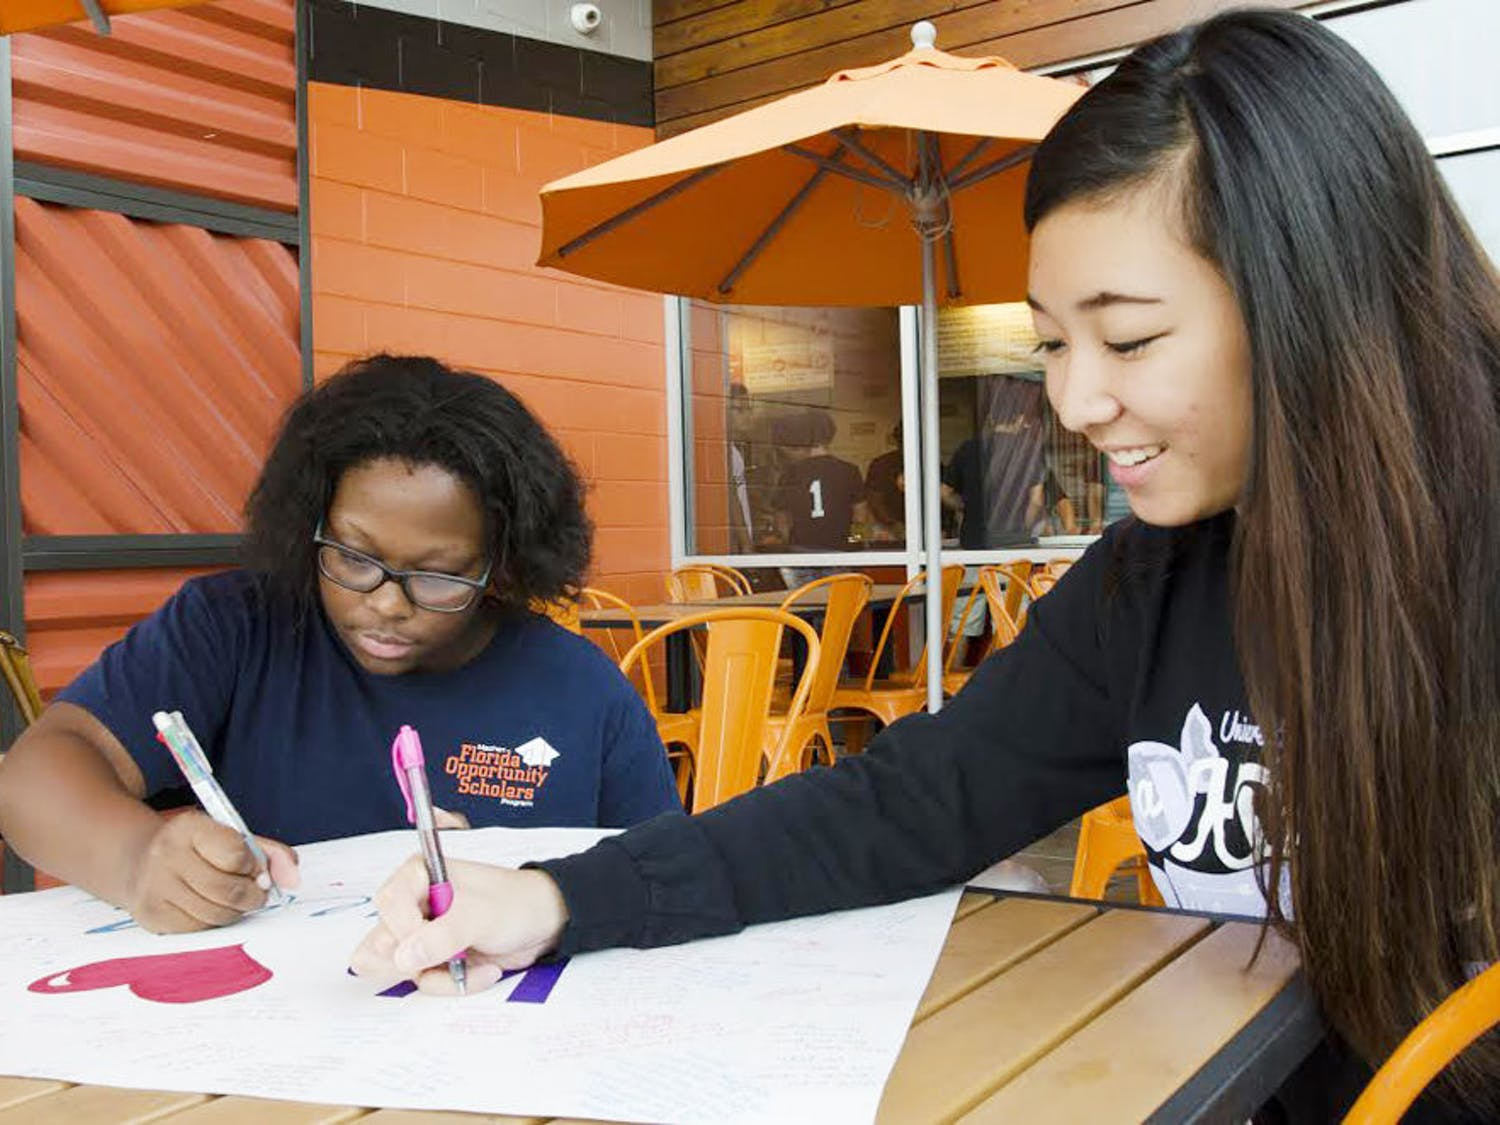 Kendra Phillip (left), 22-year-old UF health education graduate, and Athena Wong, 19-year-old UF accounting sophomore, sign a giant card for Roselle Derequito at Blaze Wednesday. Derequito's sorority, alpha Kappa Delta Phi, held a fundraiser to raise money for her medical expenses.